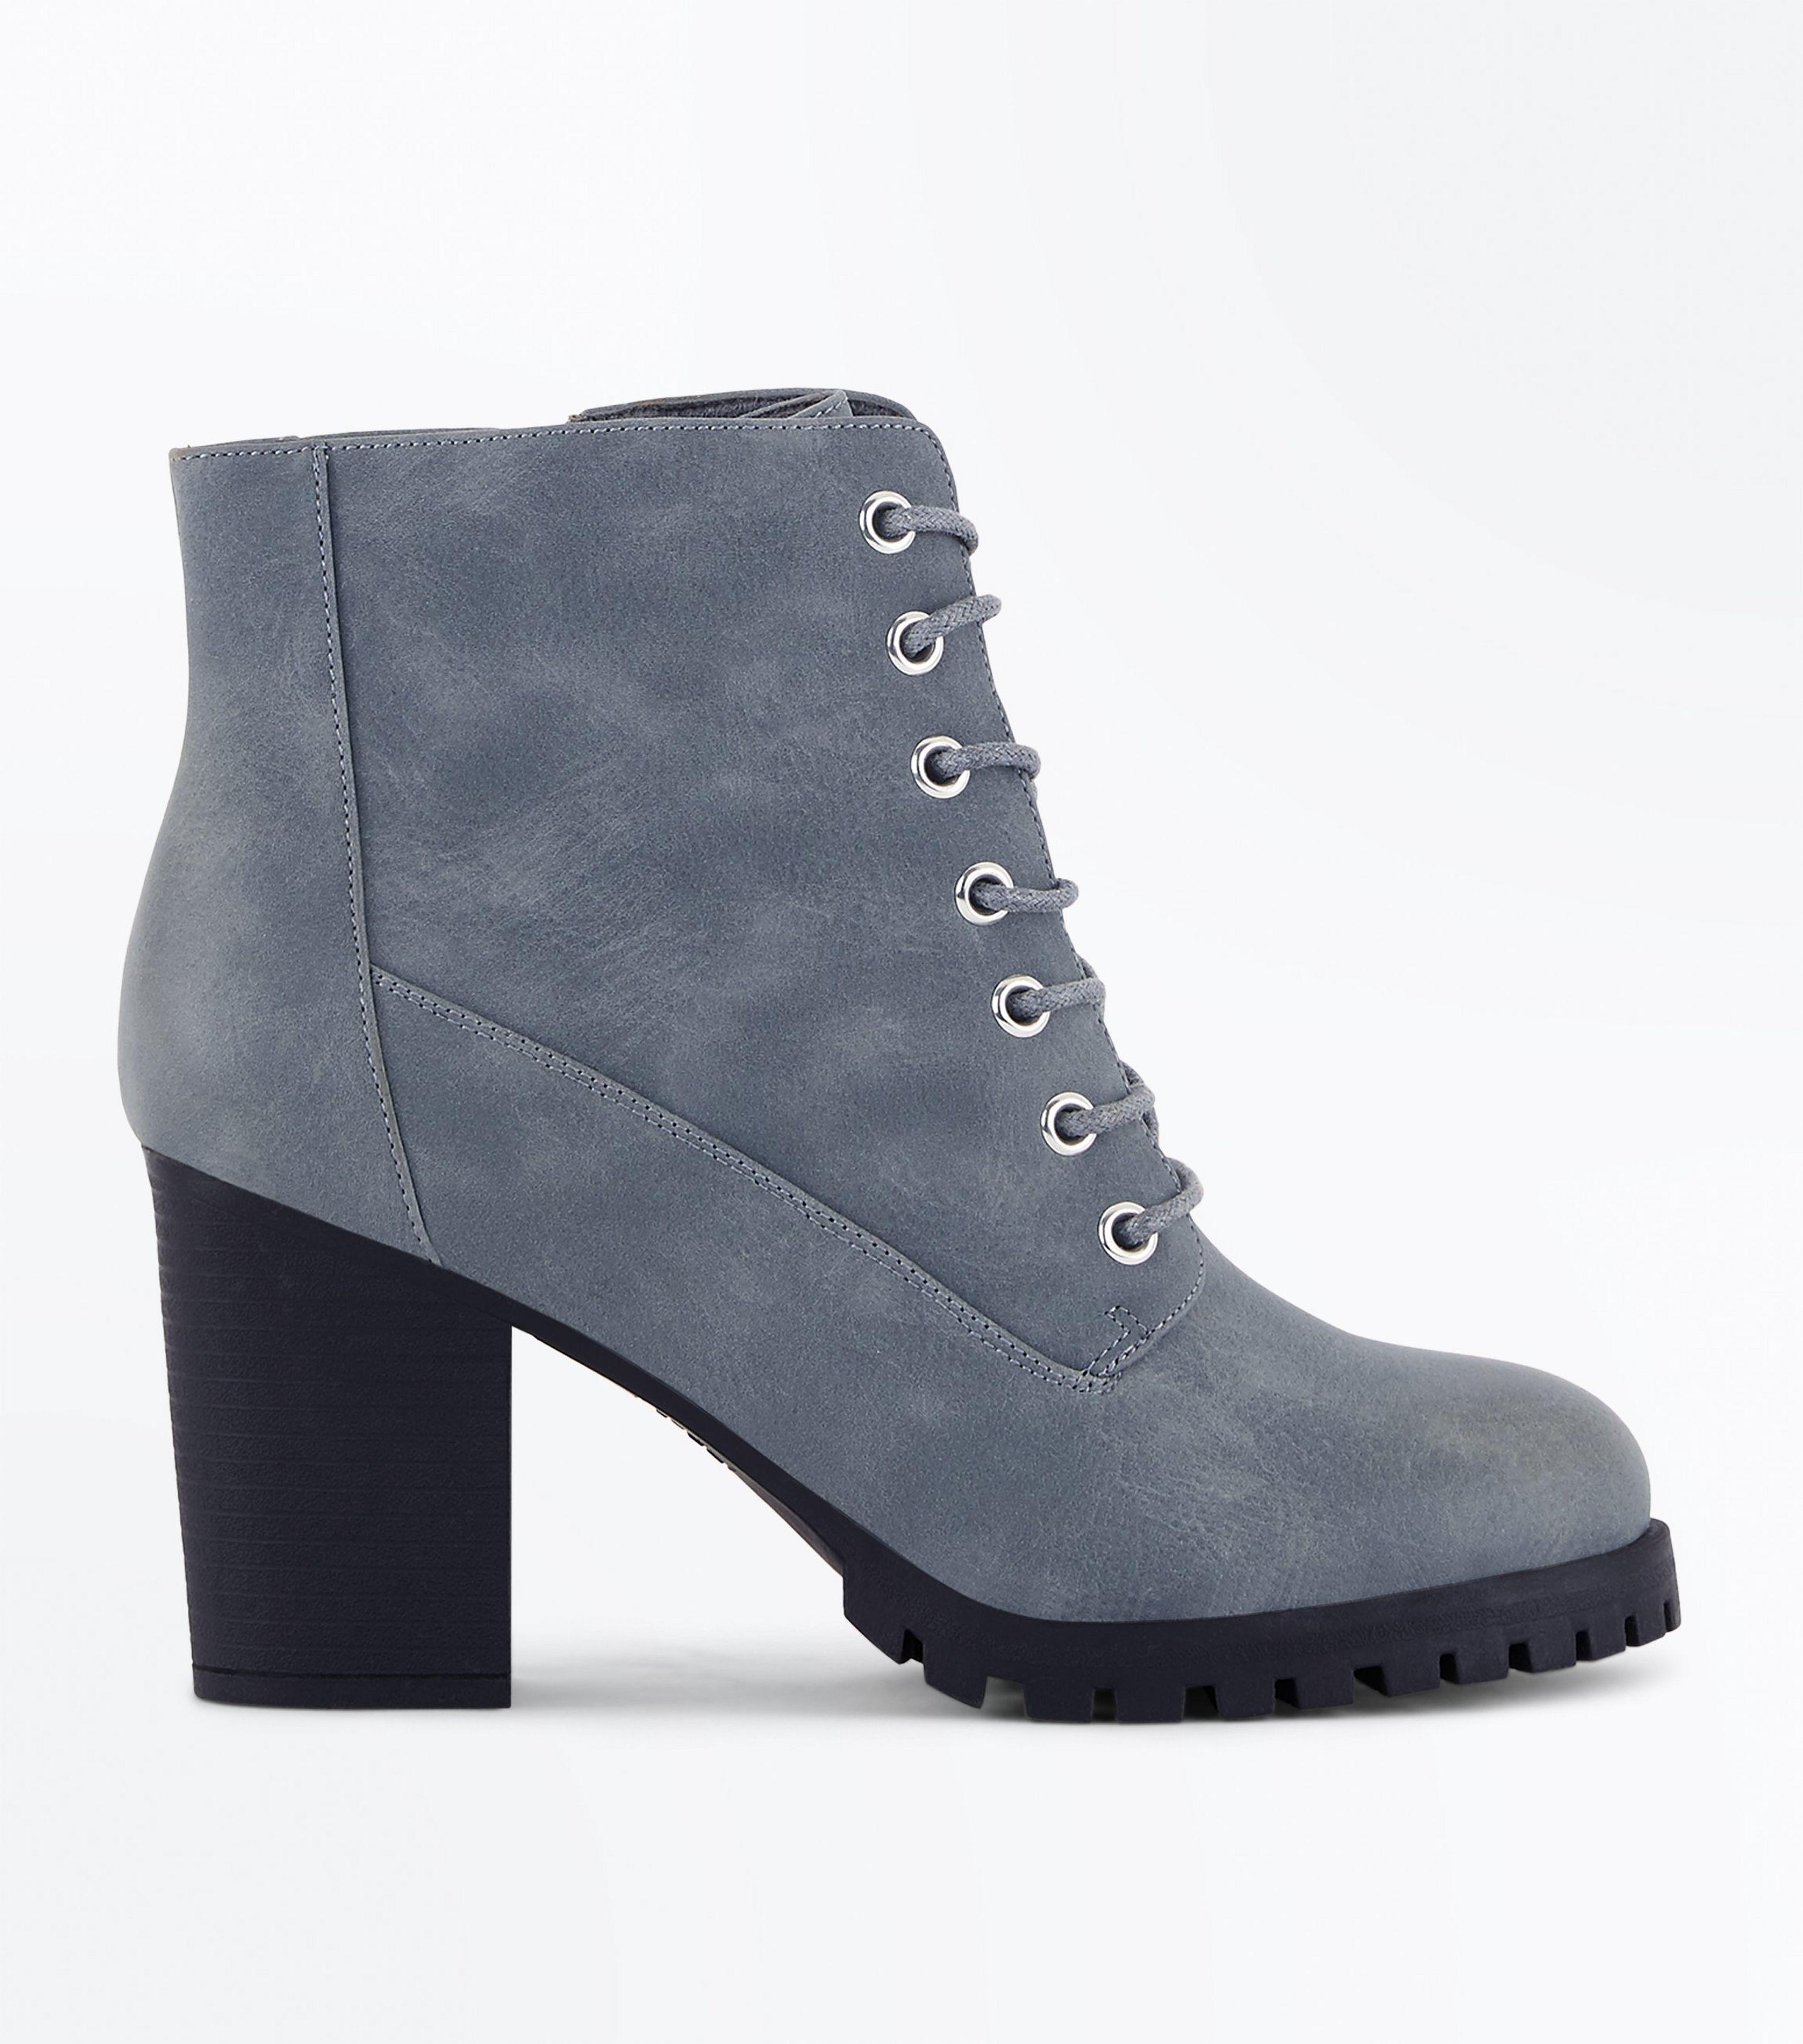 fb3416085652 New Look Wide Fit Grey Lace Up Heeled Biker Boots in Gray - Lyst